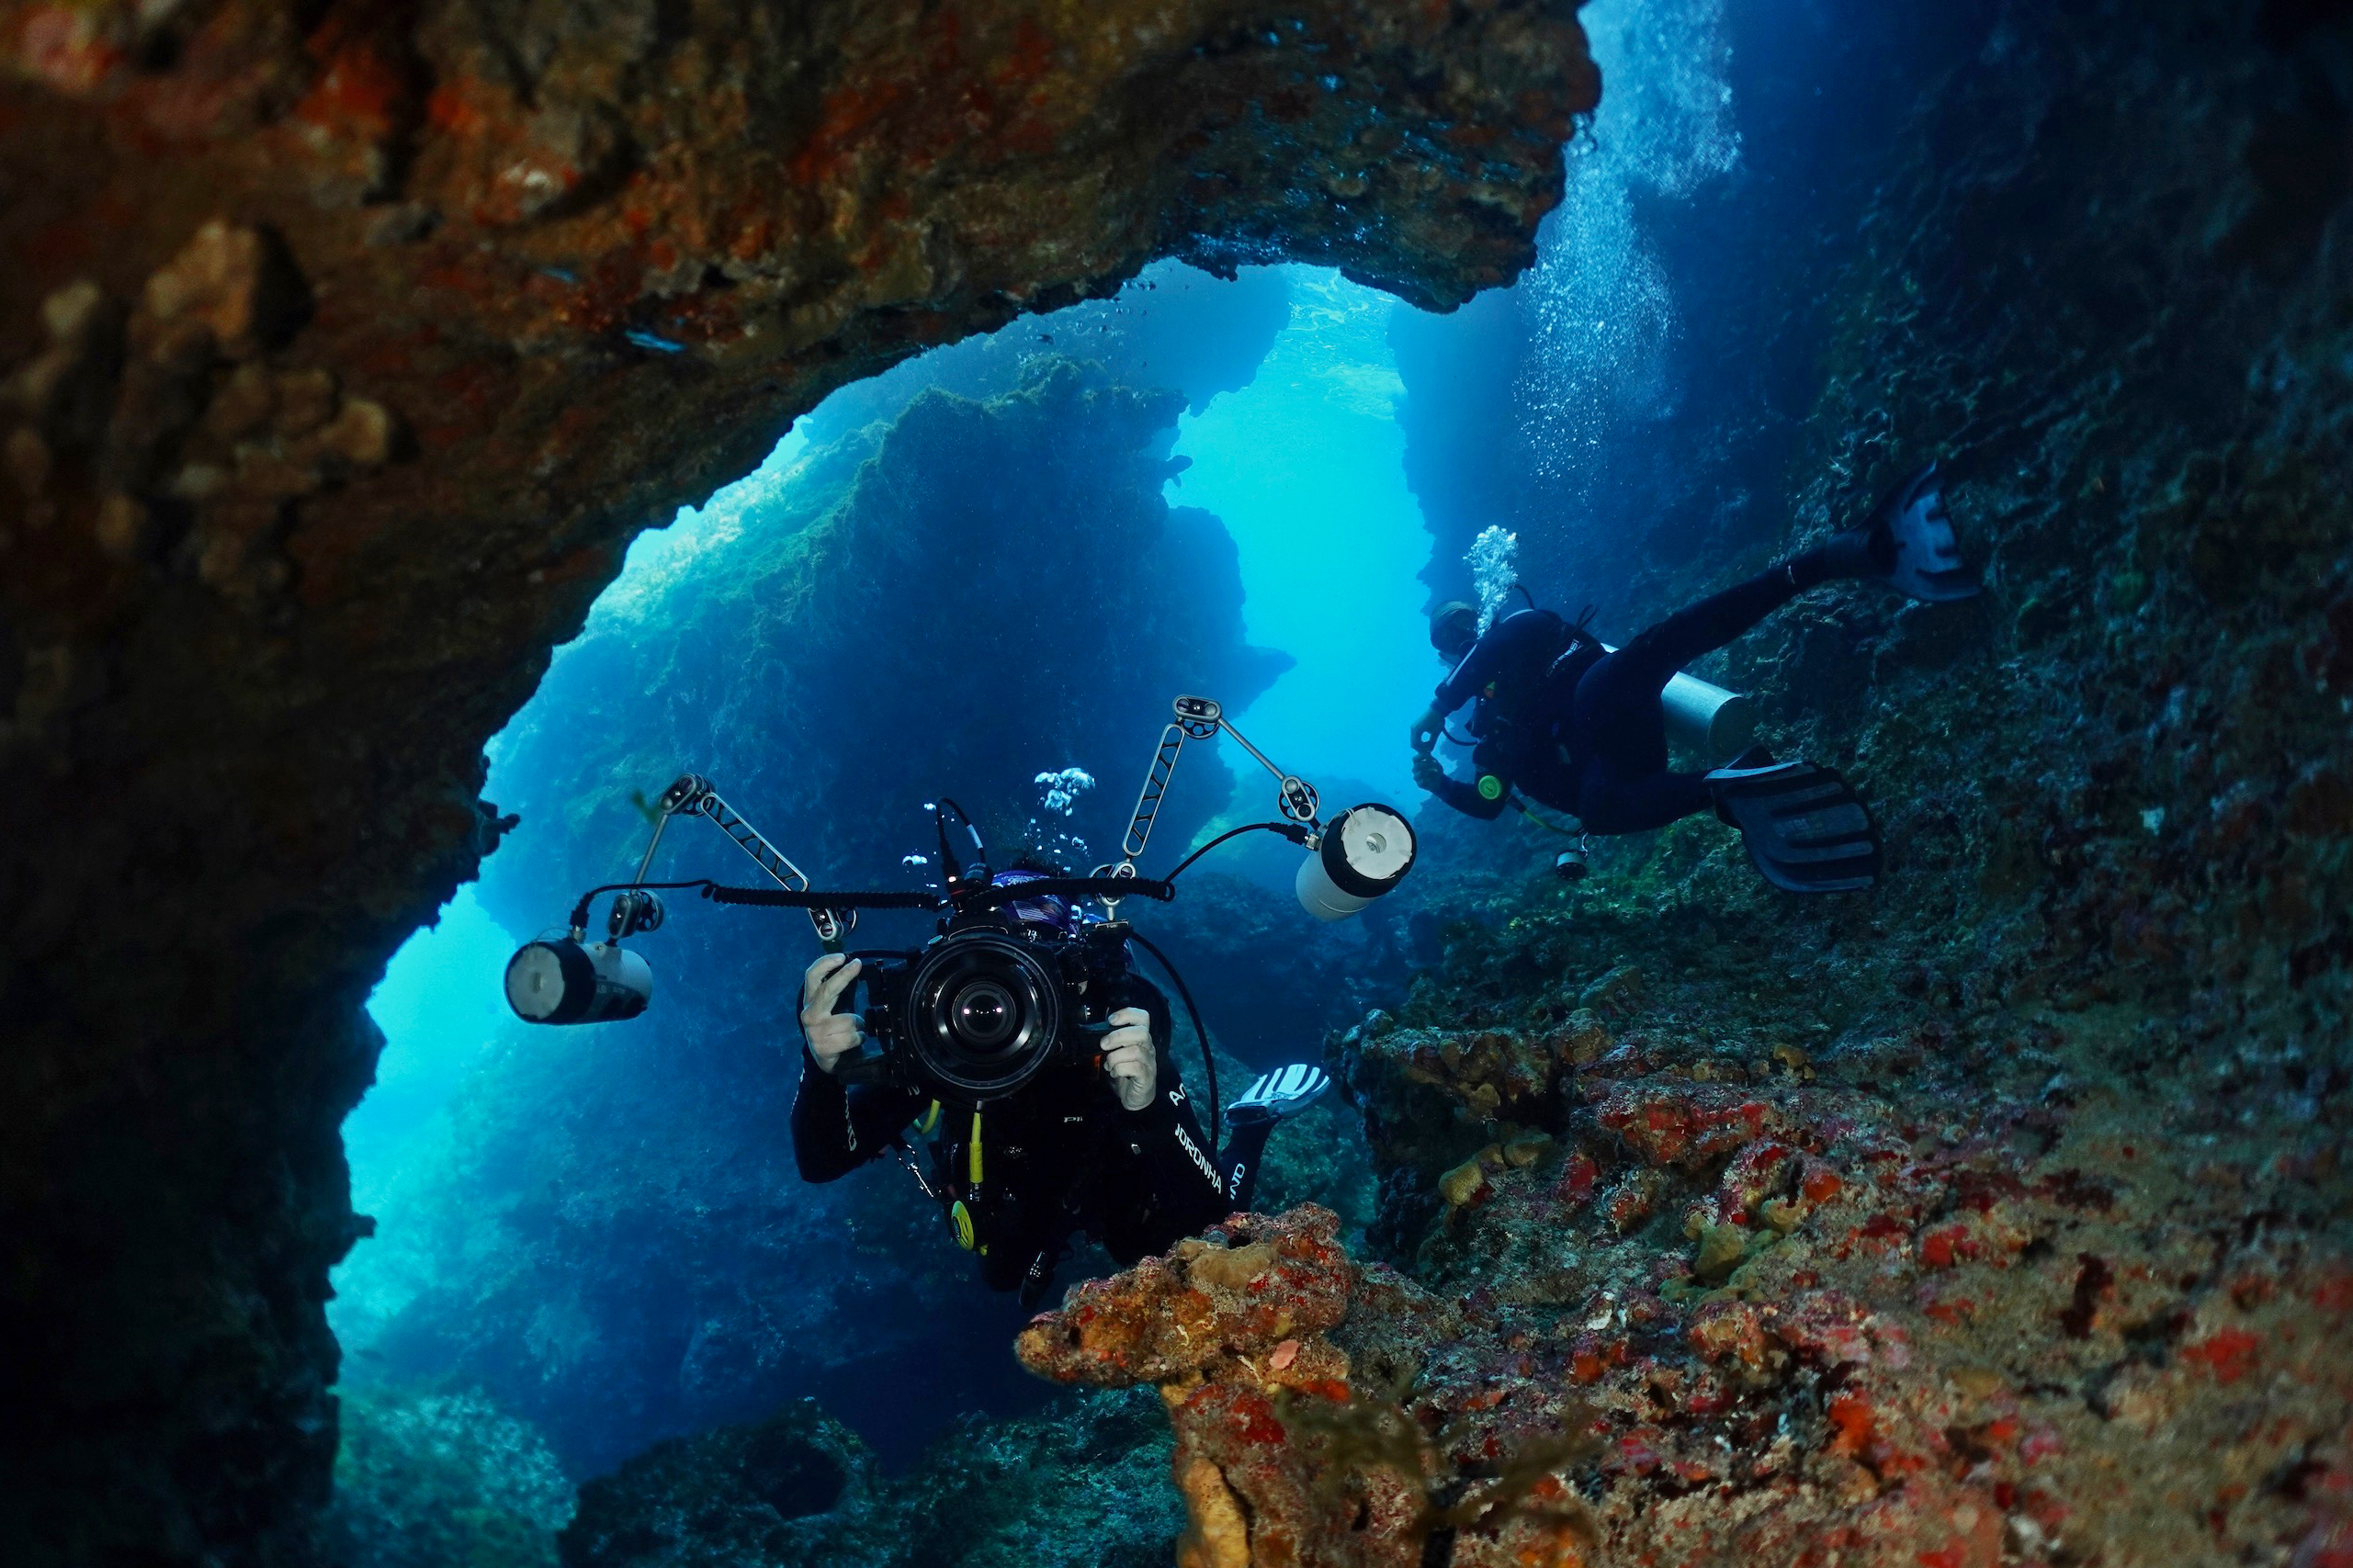 Divers in a cave at Ilha do Meio. Photo by Pierre Constant